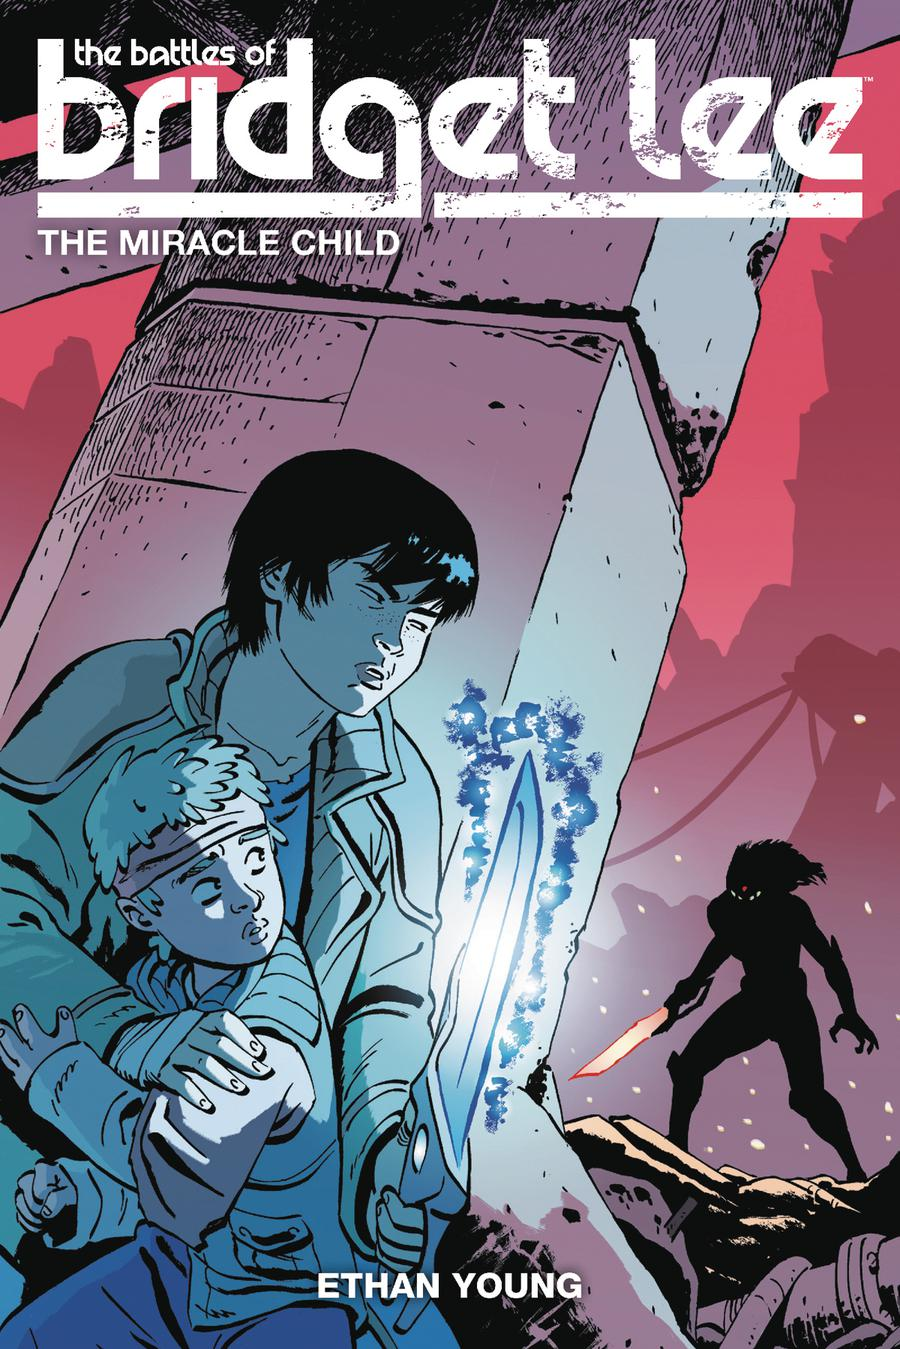 Battles Of Bridget Lee Vol 2 Miracle Child TP